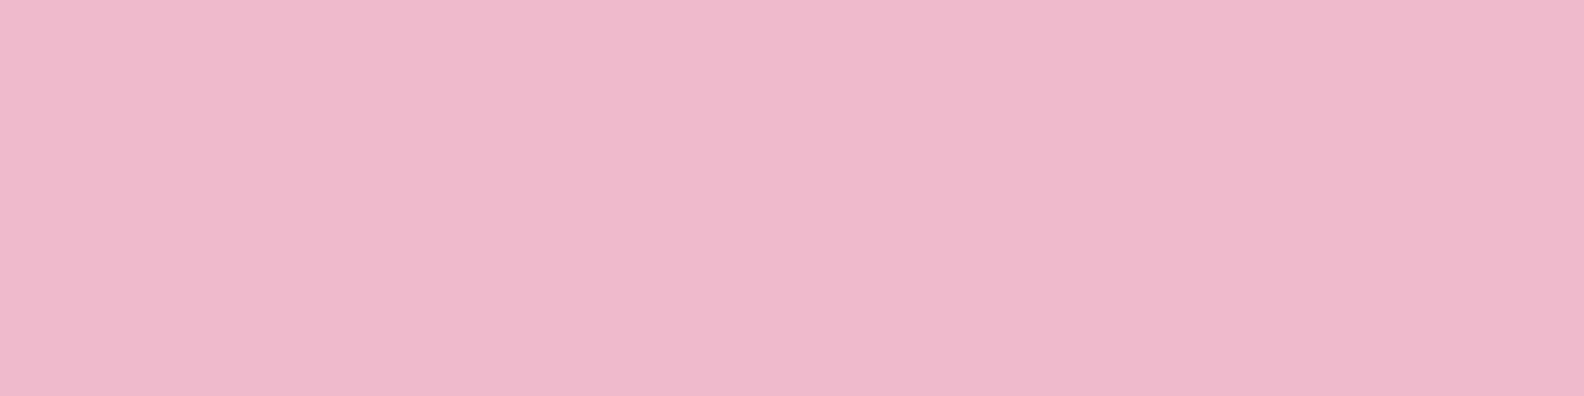 1584x396 Cameo Pink Solid Color Background